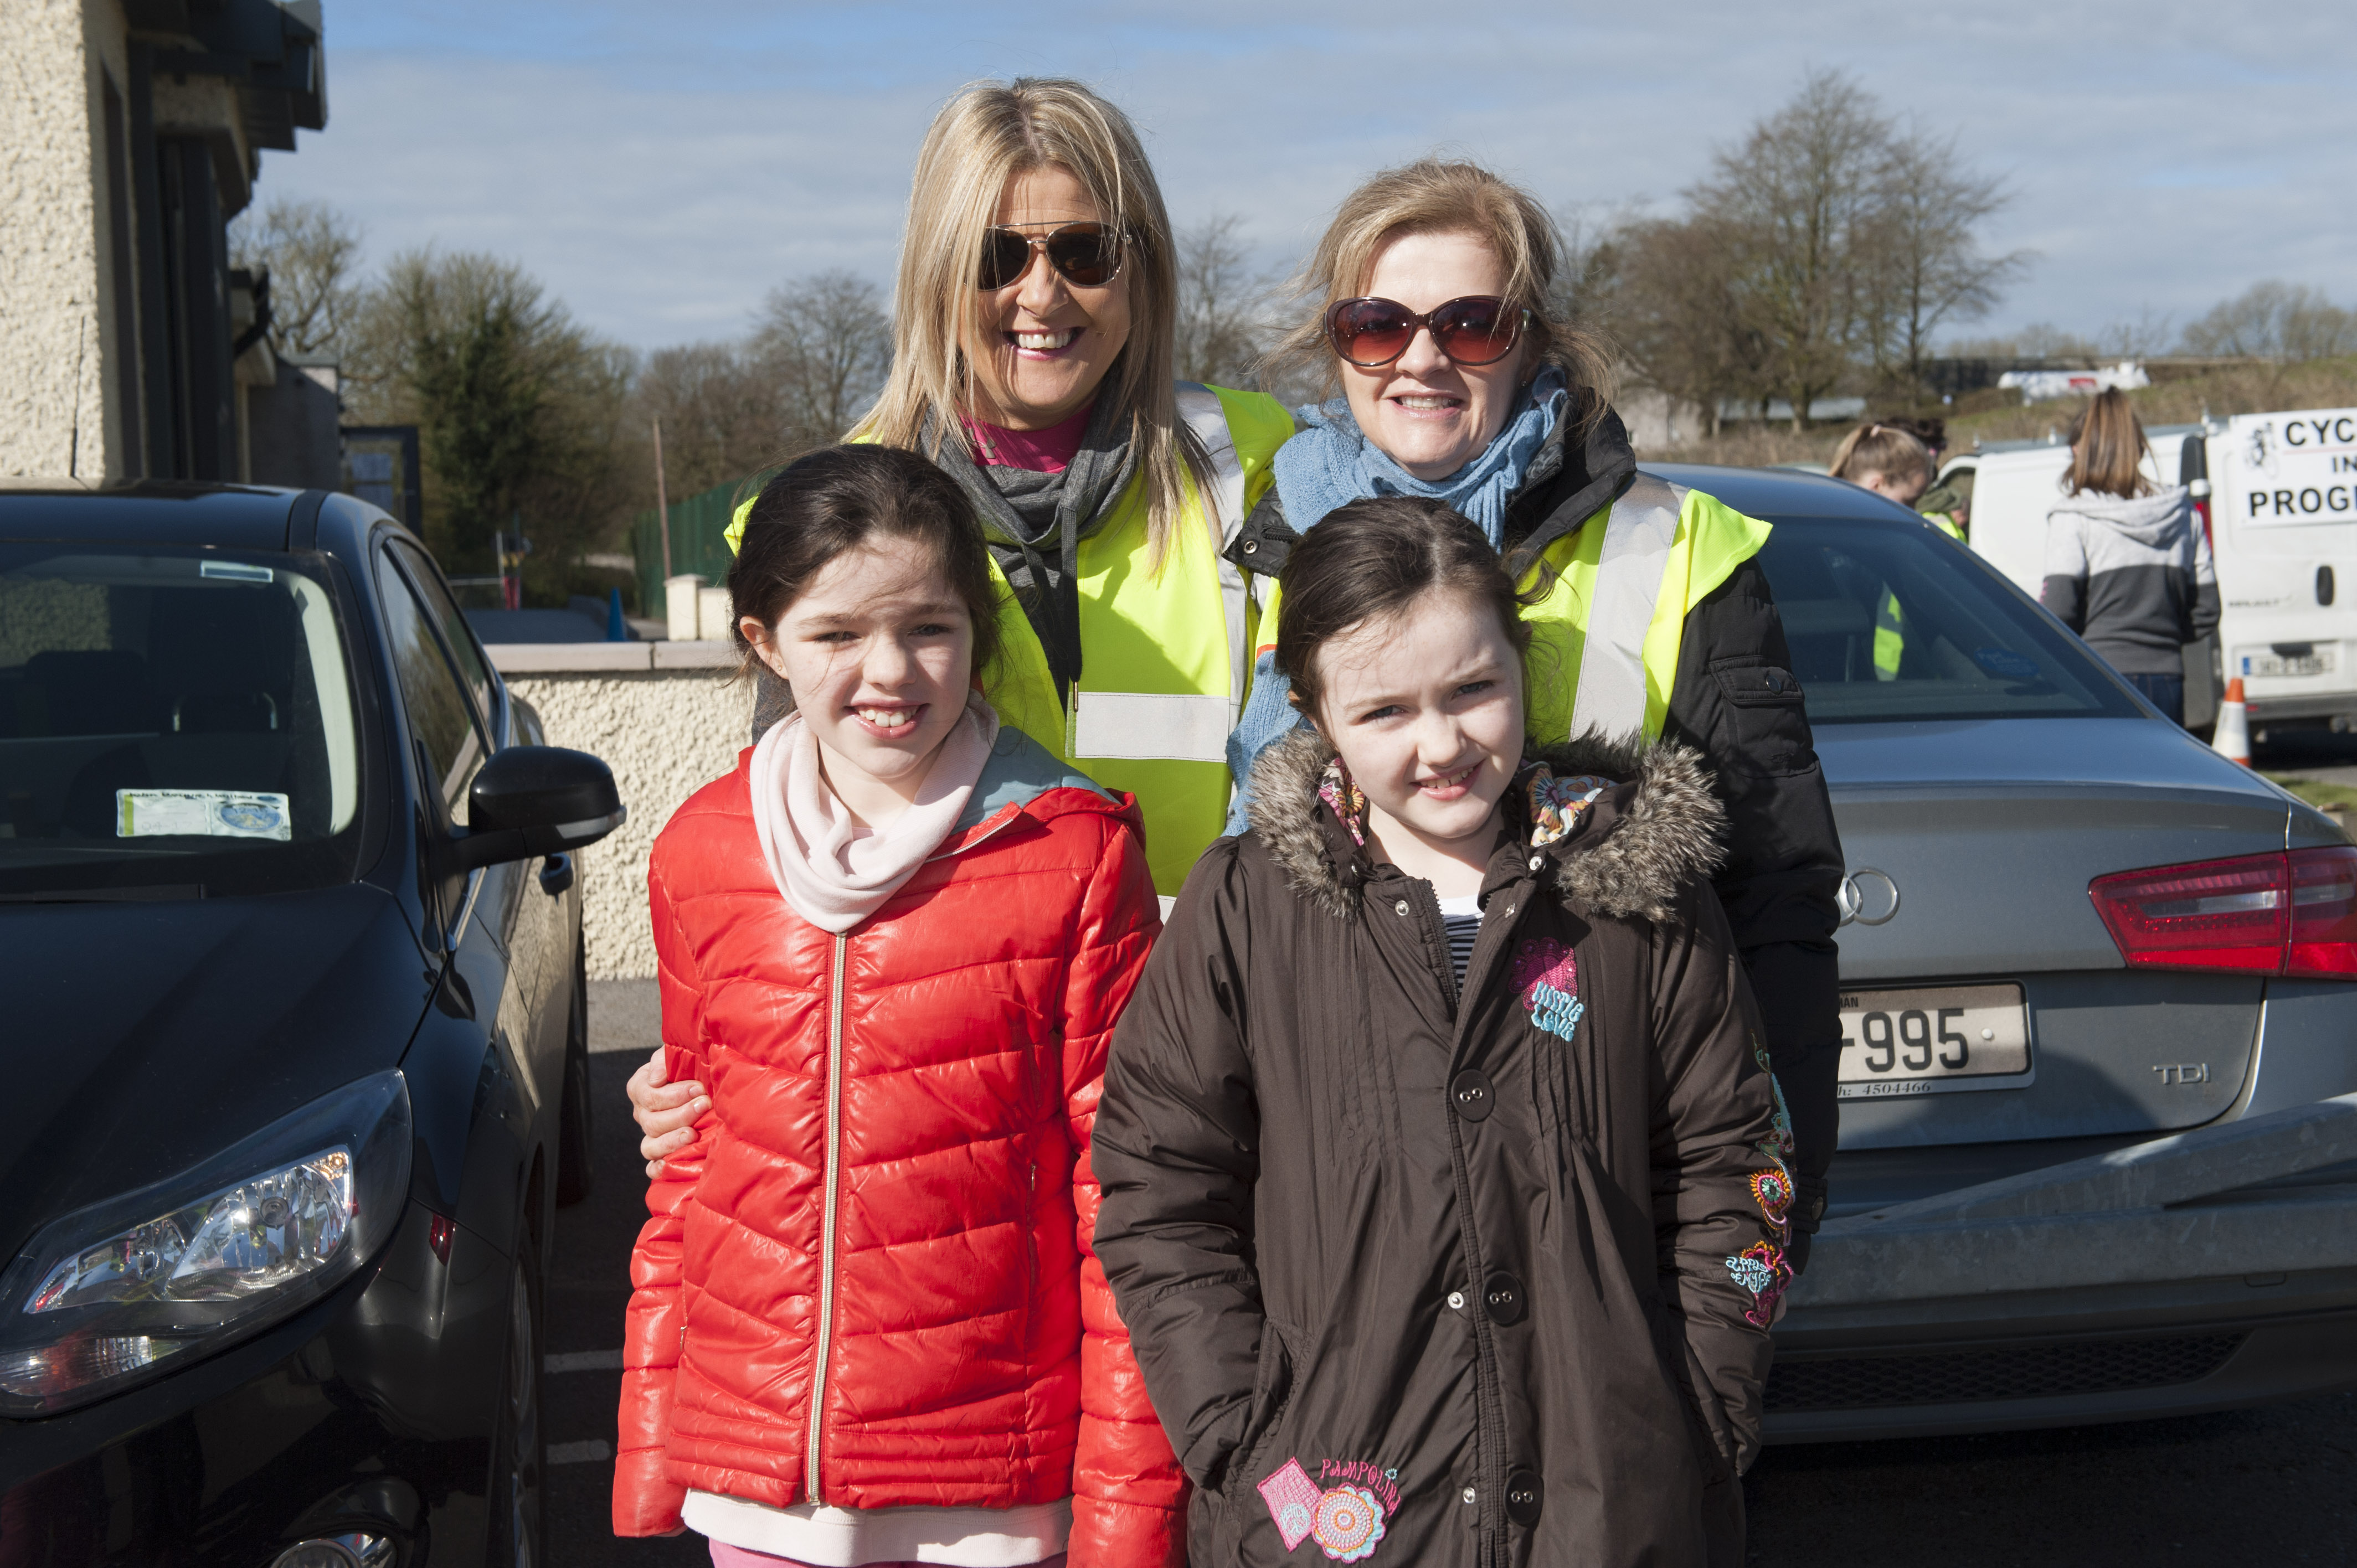 At the cycle for Scoil Mhuire, Gransha were Christine O'Keefe, Karen McKenna, Diane O'Keefe and Kayla O'Keefe. ©Rory Geary/The Northern Standard